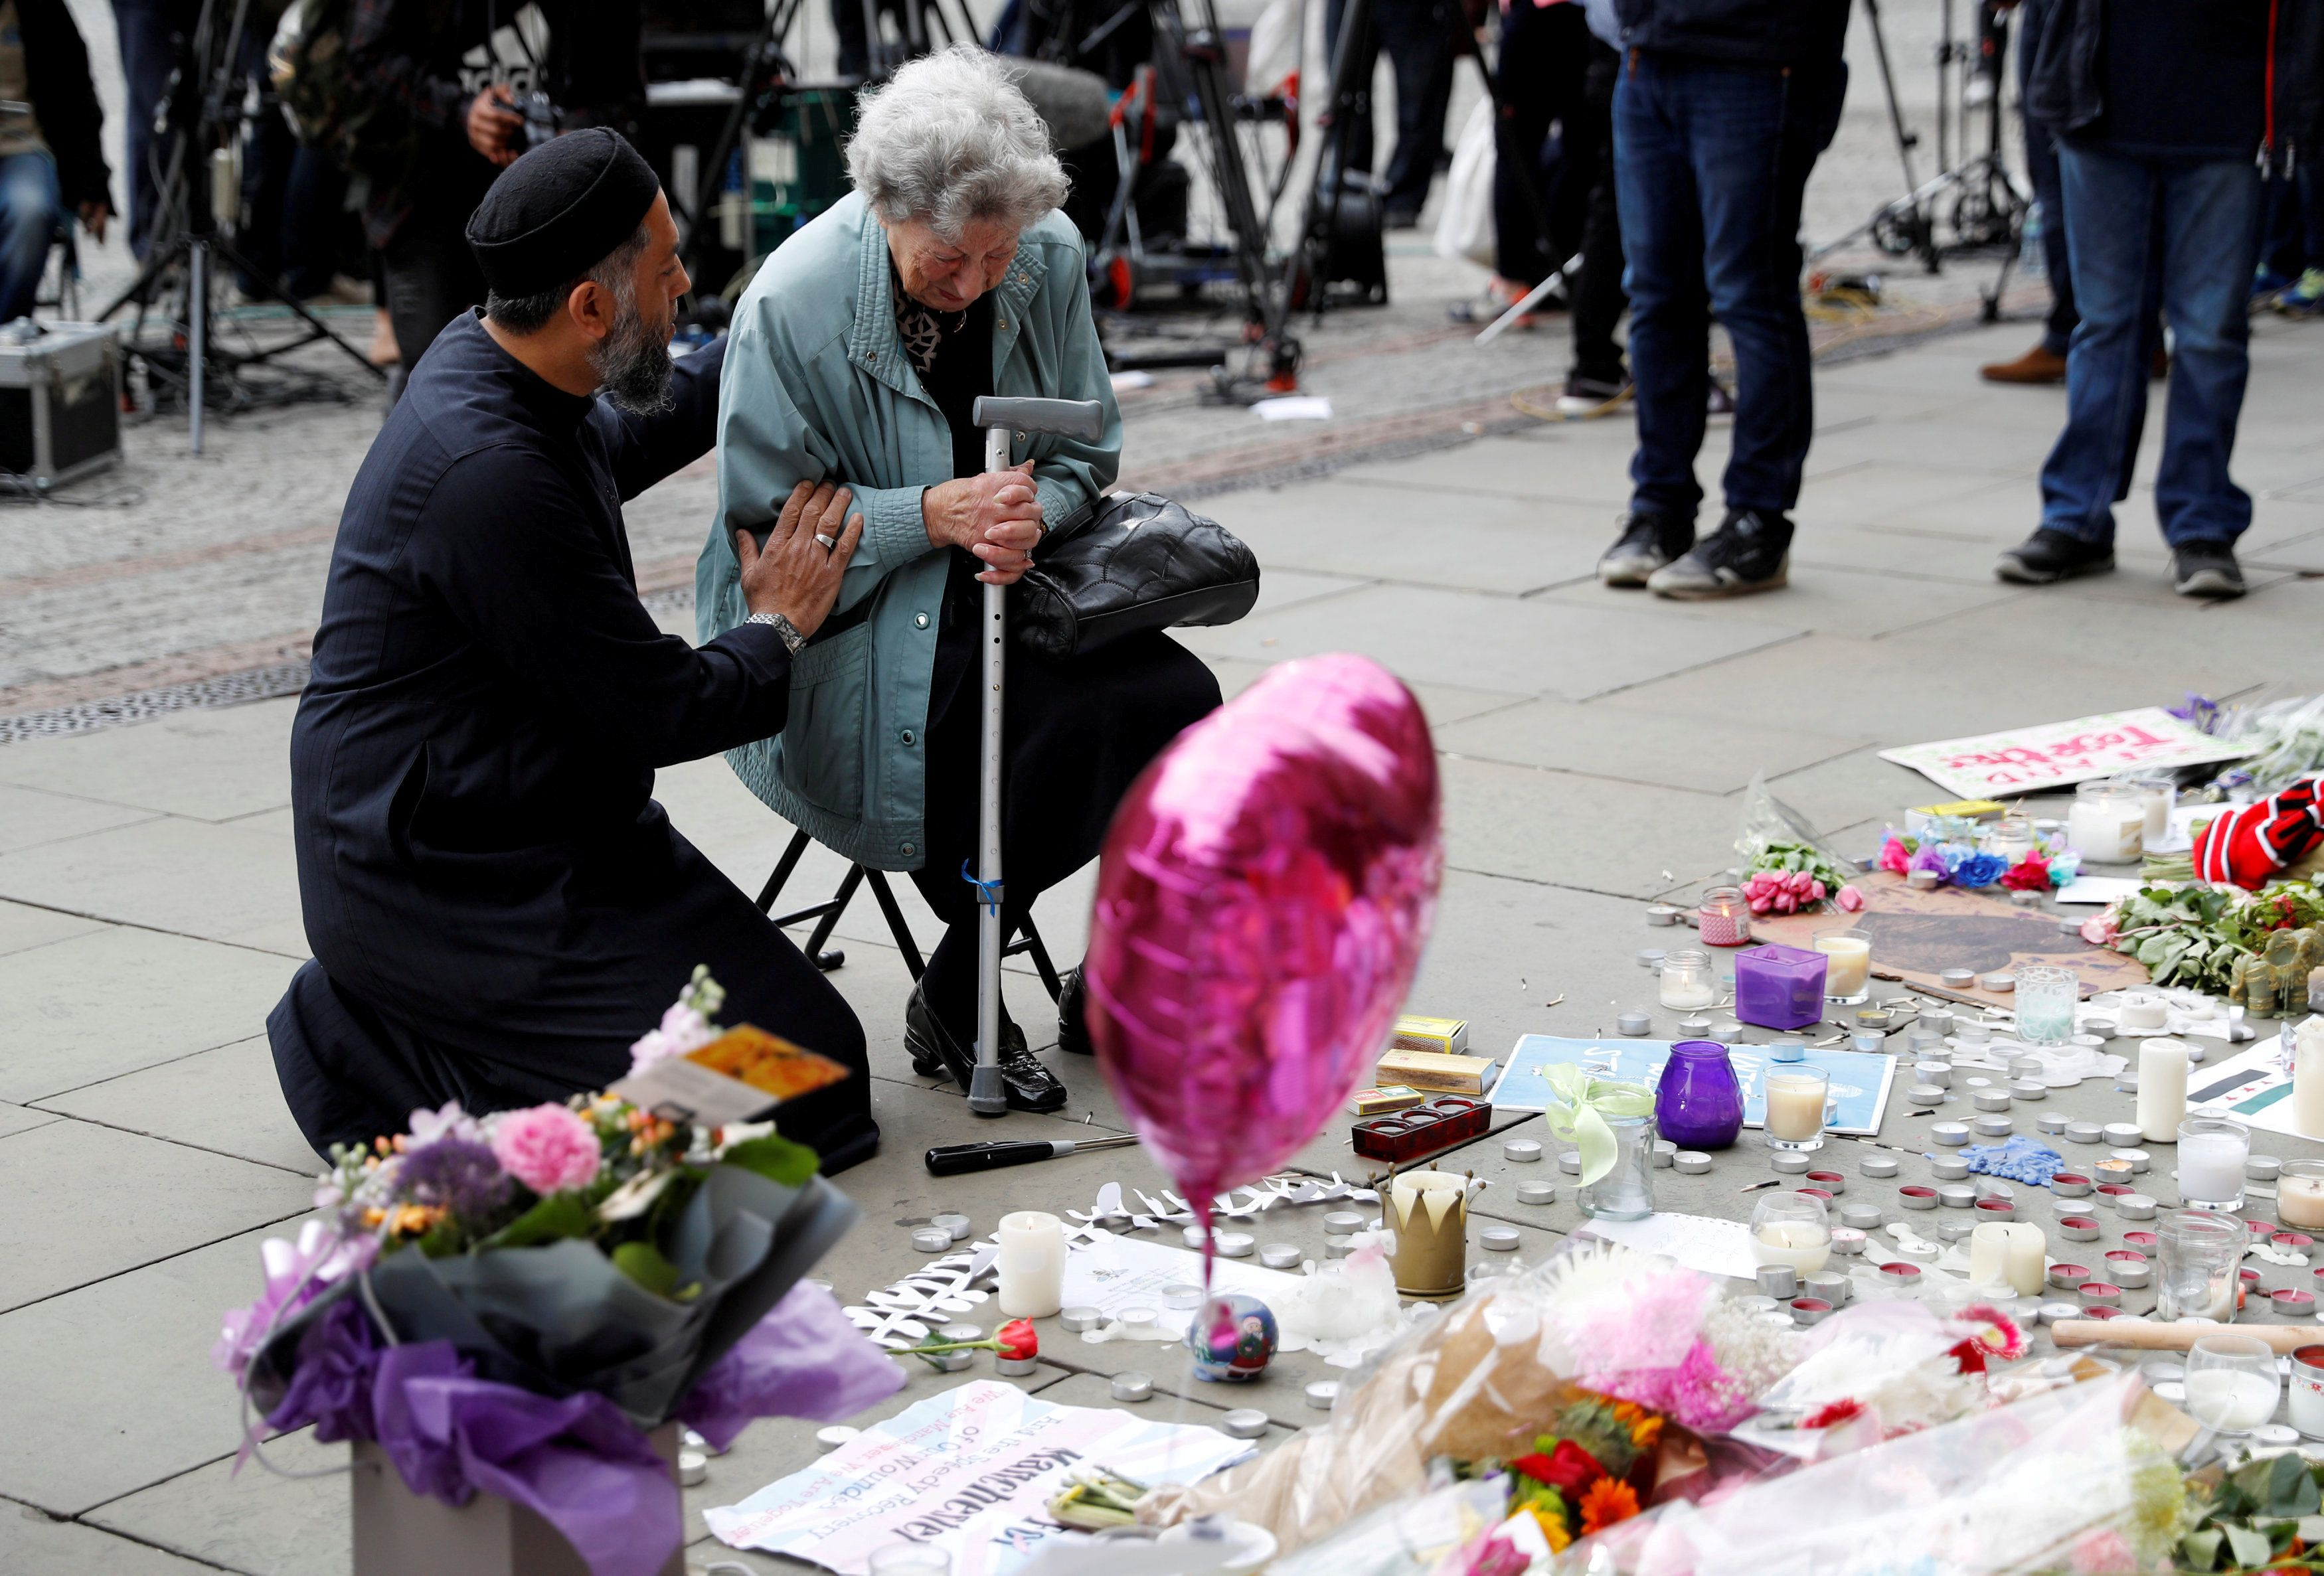 A Muslim man named Sadiq Patel comforts a Jewish woman named Renee Rachel Black next to floral tributes in Albert Square in M